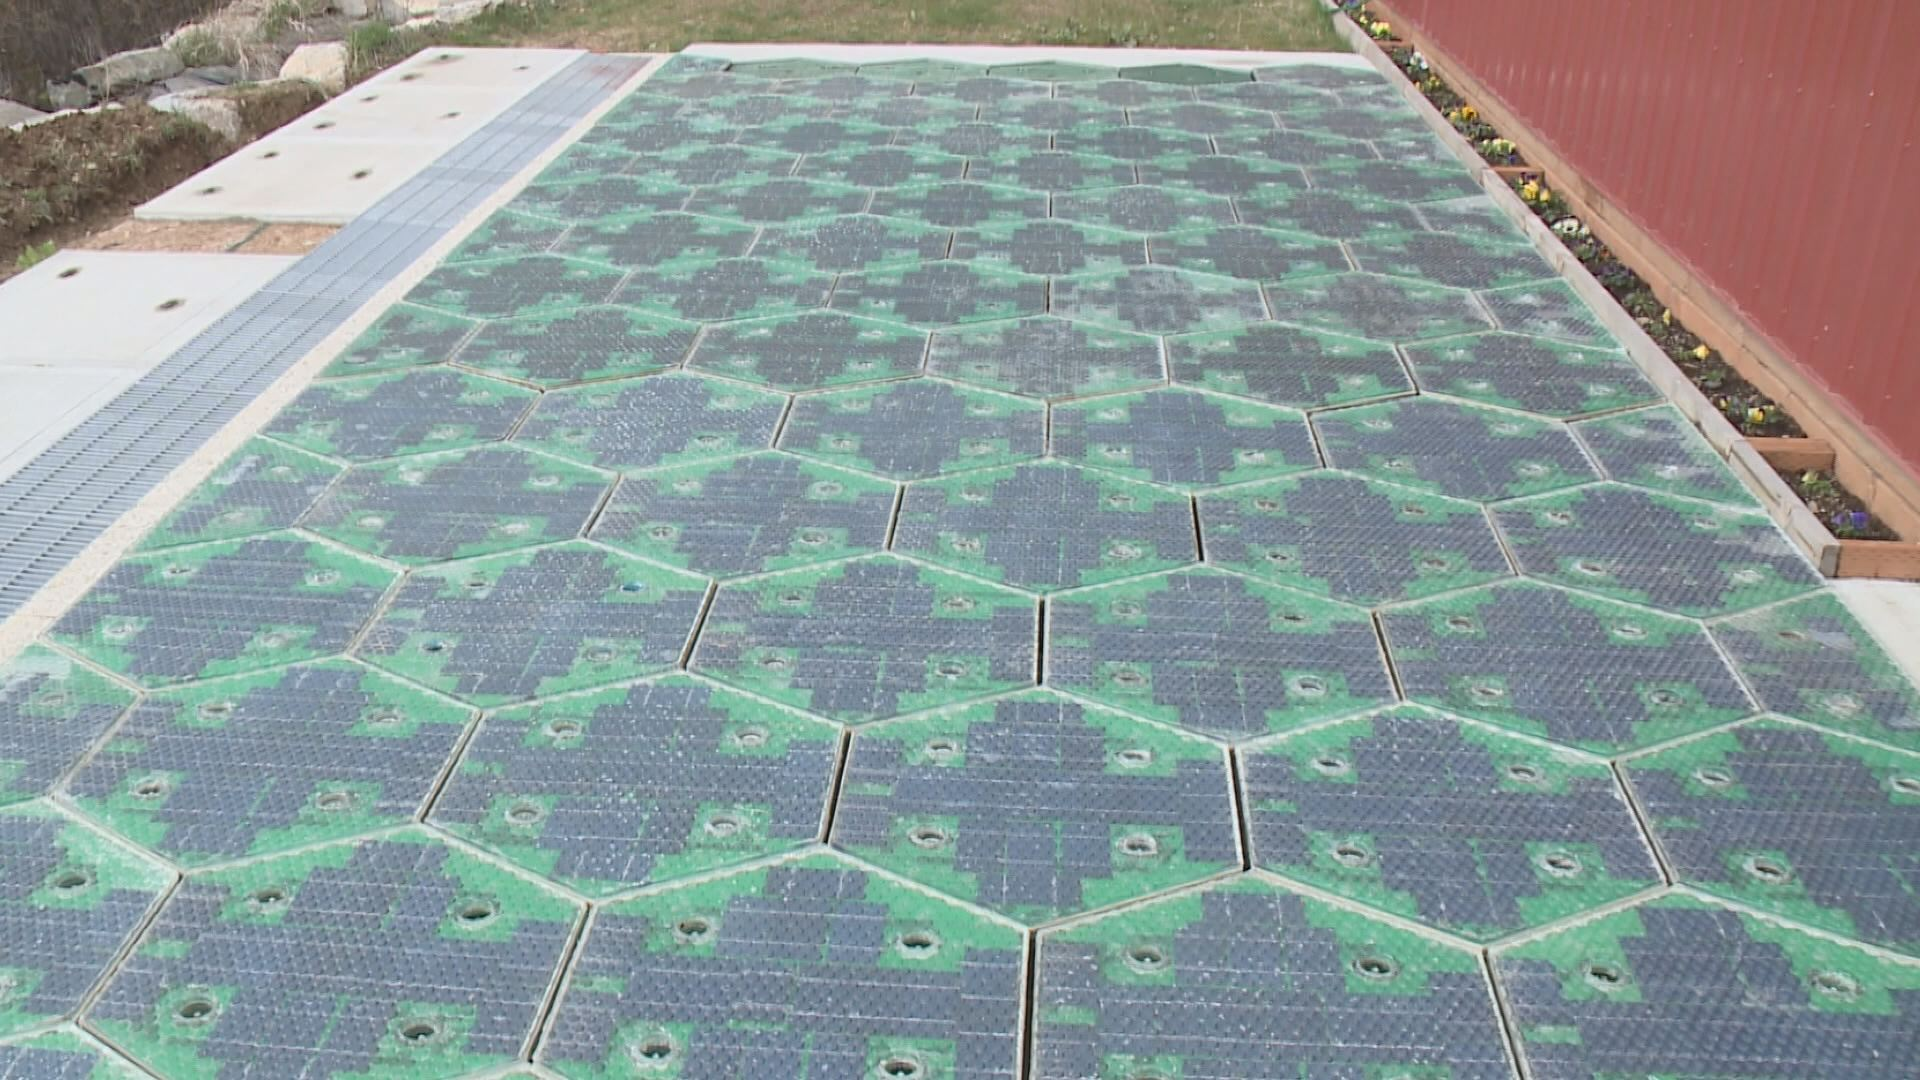 ... we will see more use of the solar road panels in the upcoming future